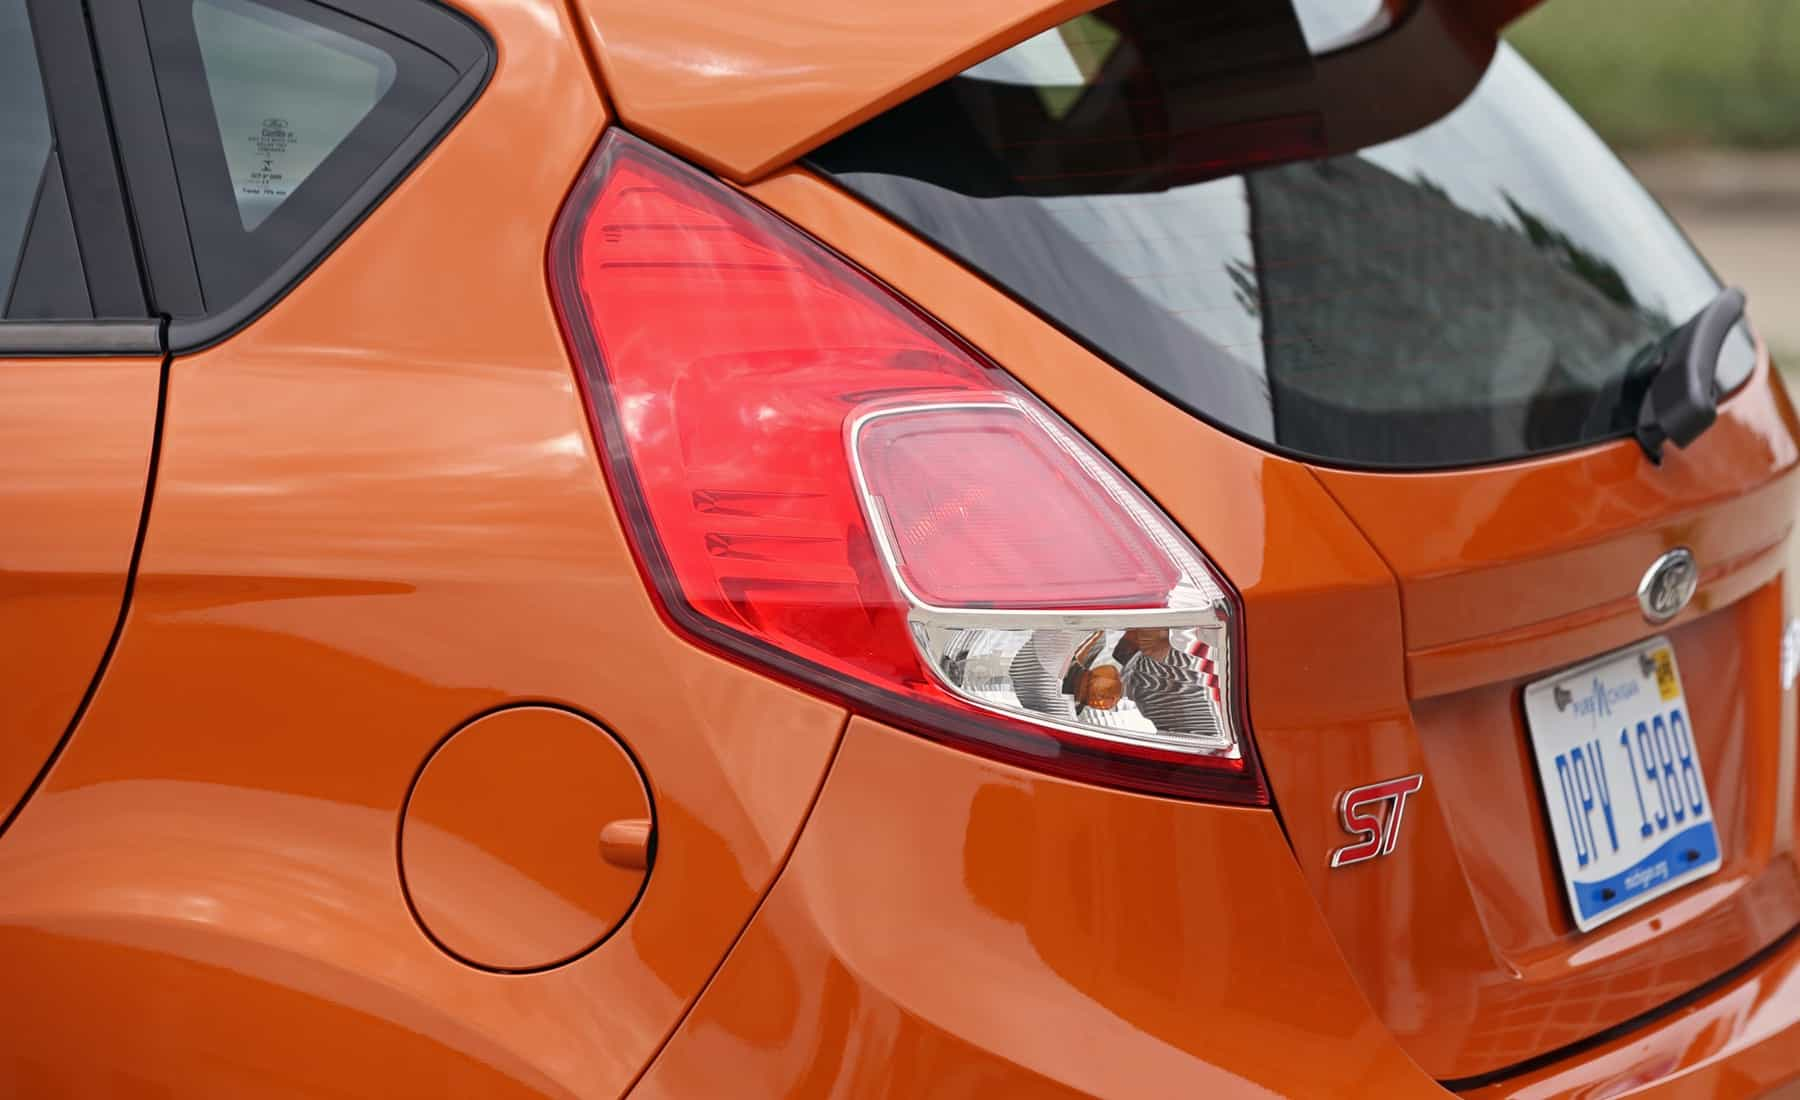 2017 Ford Fiesta ST Exterior View Taillight (Photo 13 of 47)